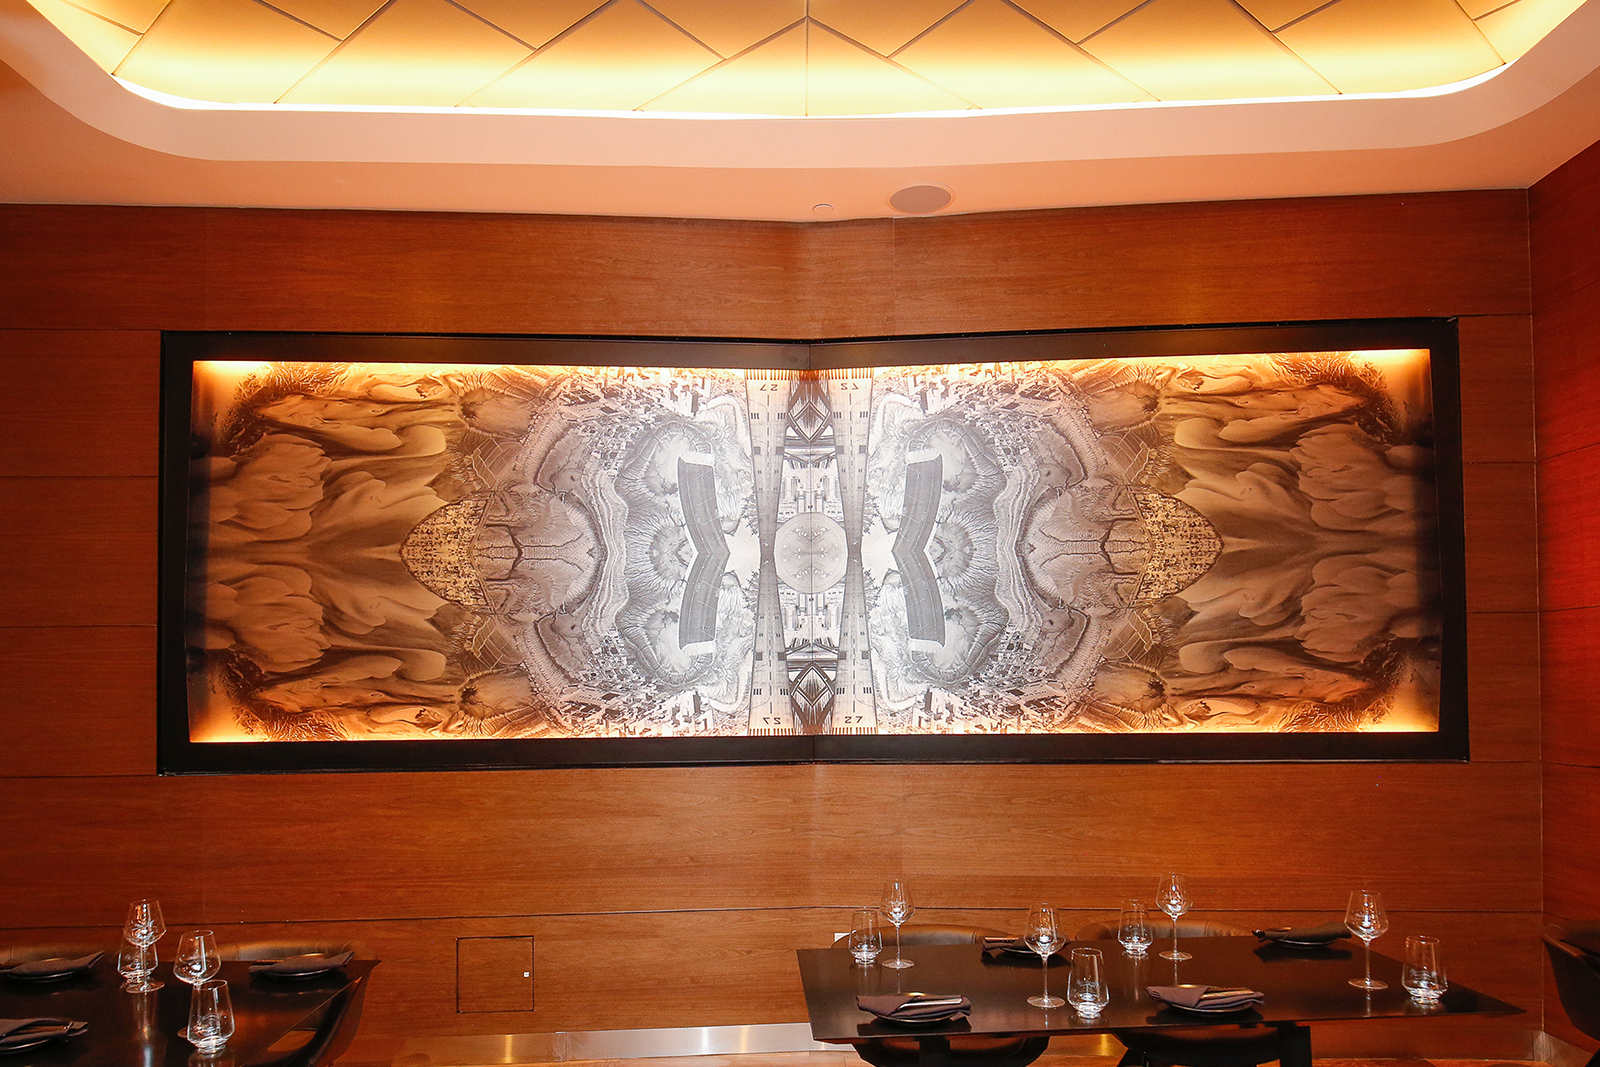 Lightbox mural of an abstracted and mirrored aerial topographical view displayed on a gently angled wood paneled wall behind set tables in the restaurant.